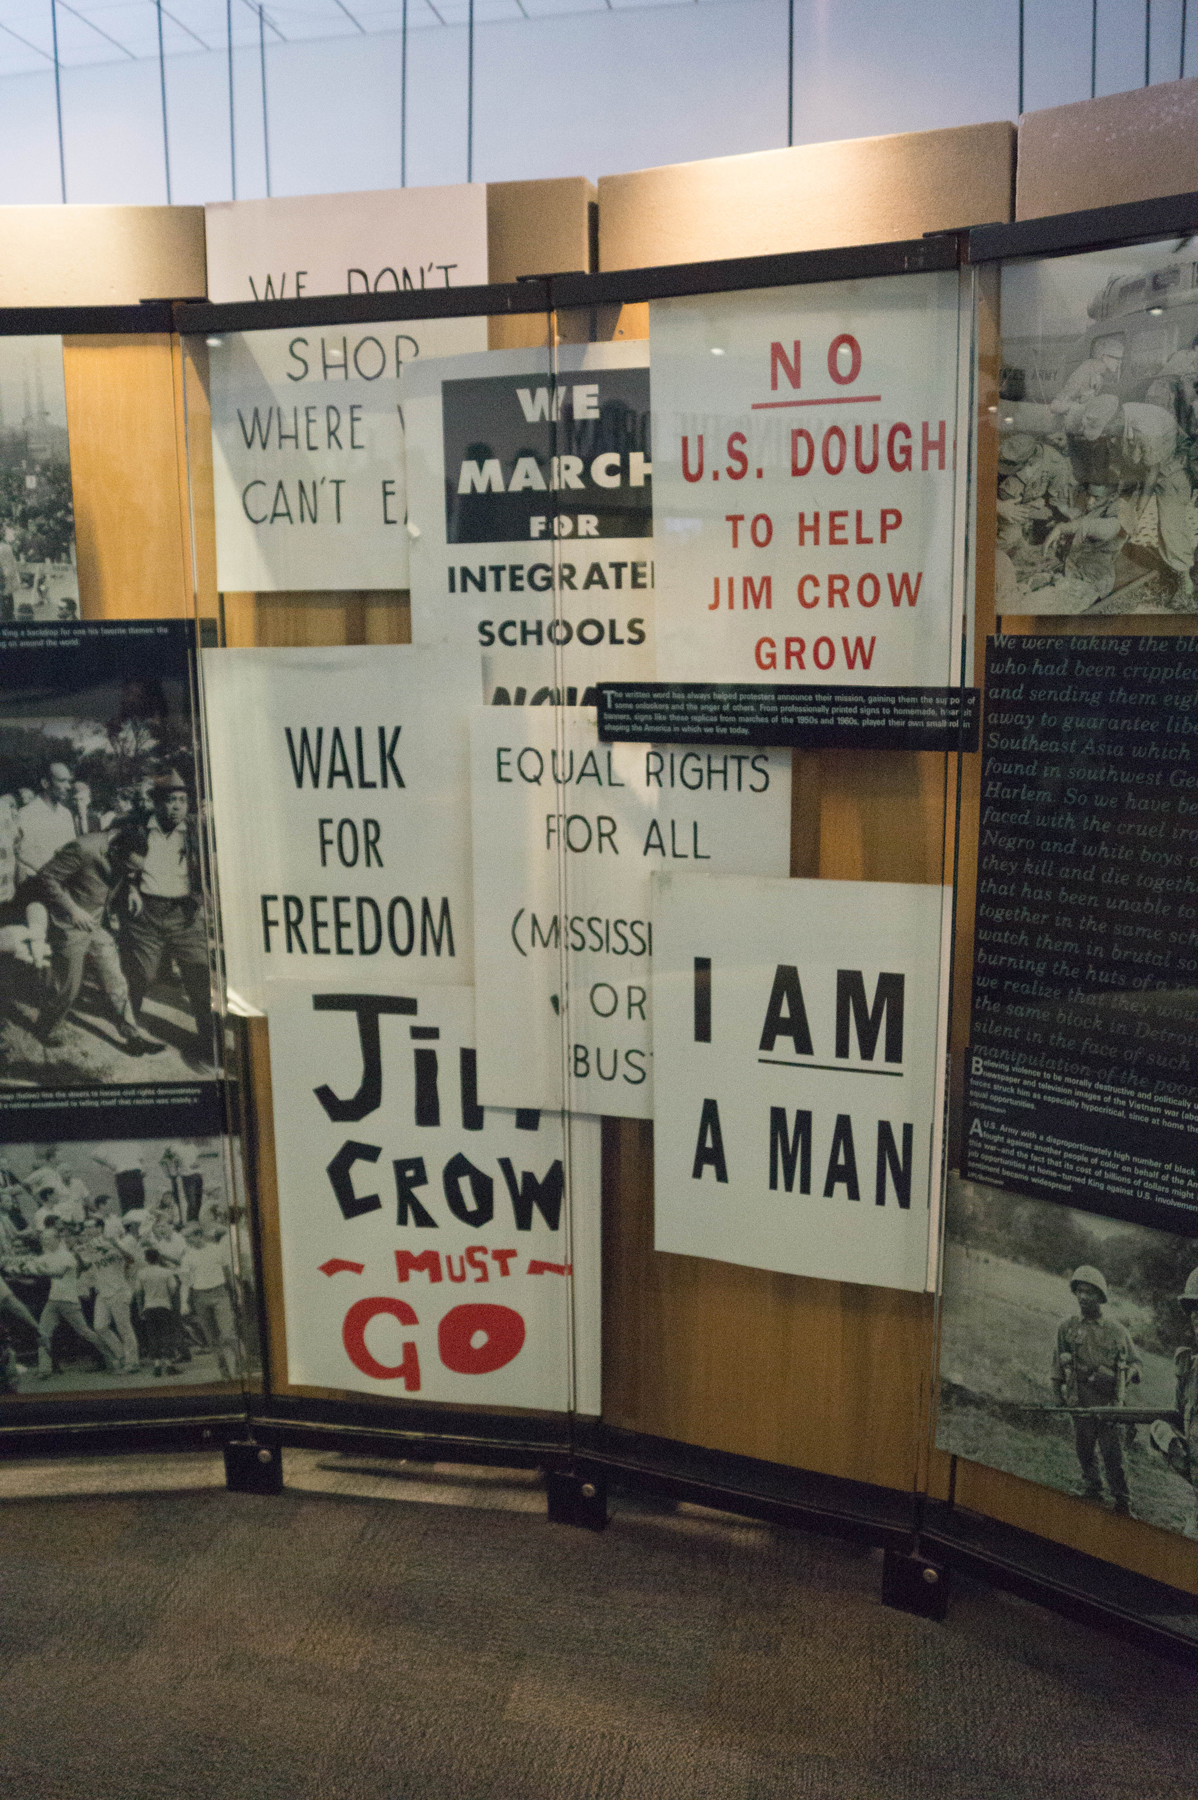 A Visit to the King Center: Signs from Marches